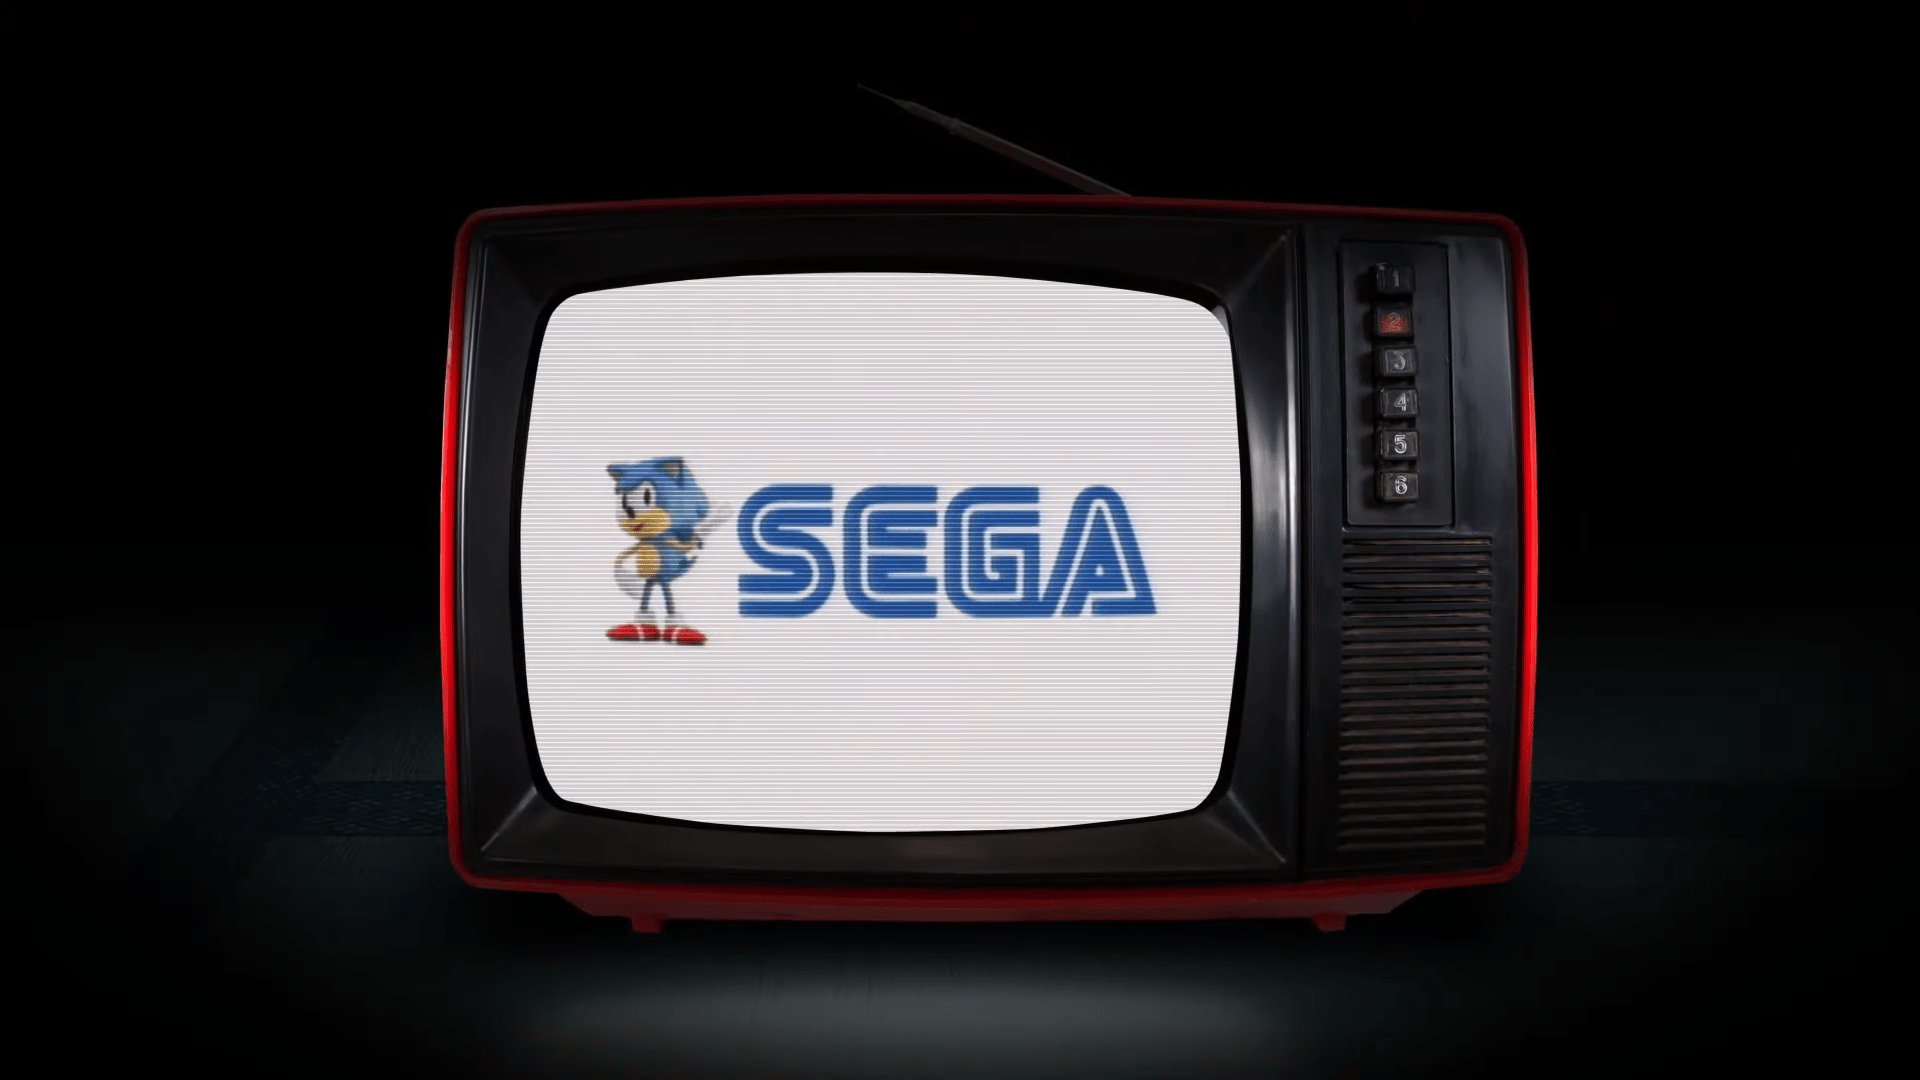 Check Out The New Trailer For The SEGA Genesis Mini, Which Shows Off Some Of The Console's Best Games